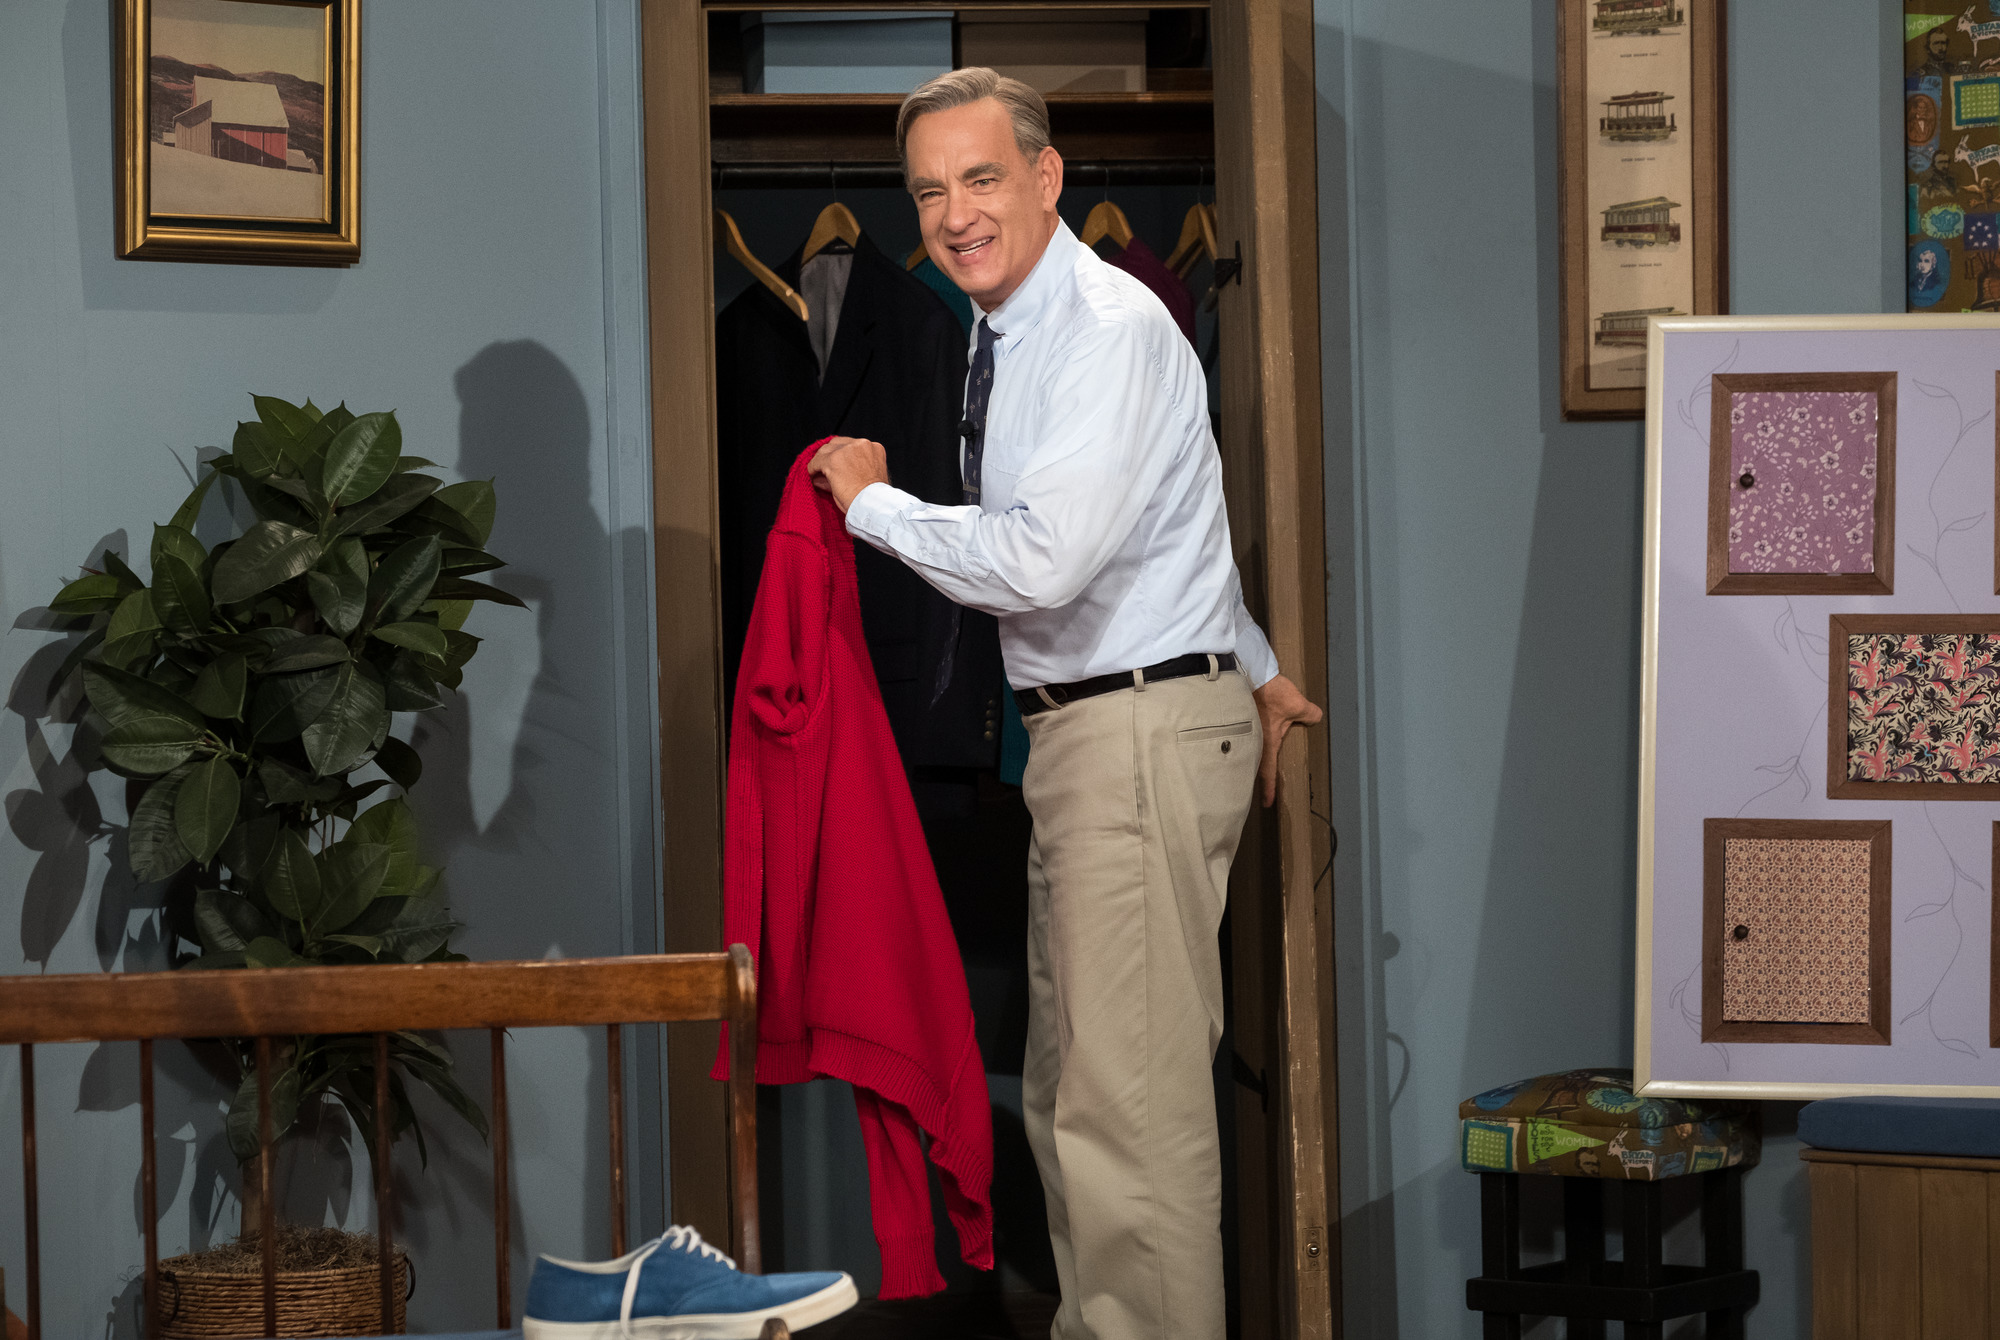 Tom Hanks stars as Mister Rogers in 'A Beautiful Day in the Neighborhood.'